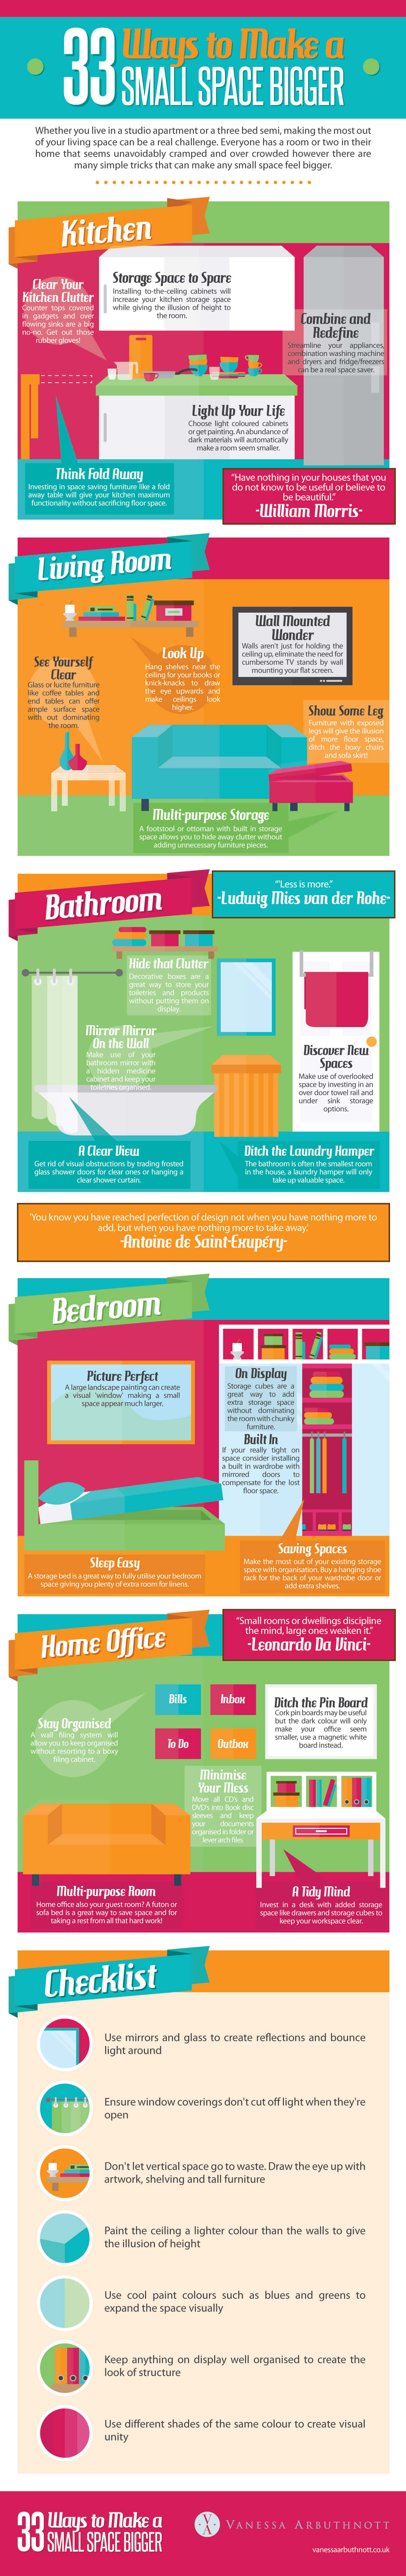 33-ways-to-make-a-small-space-feel-bigger-infographic